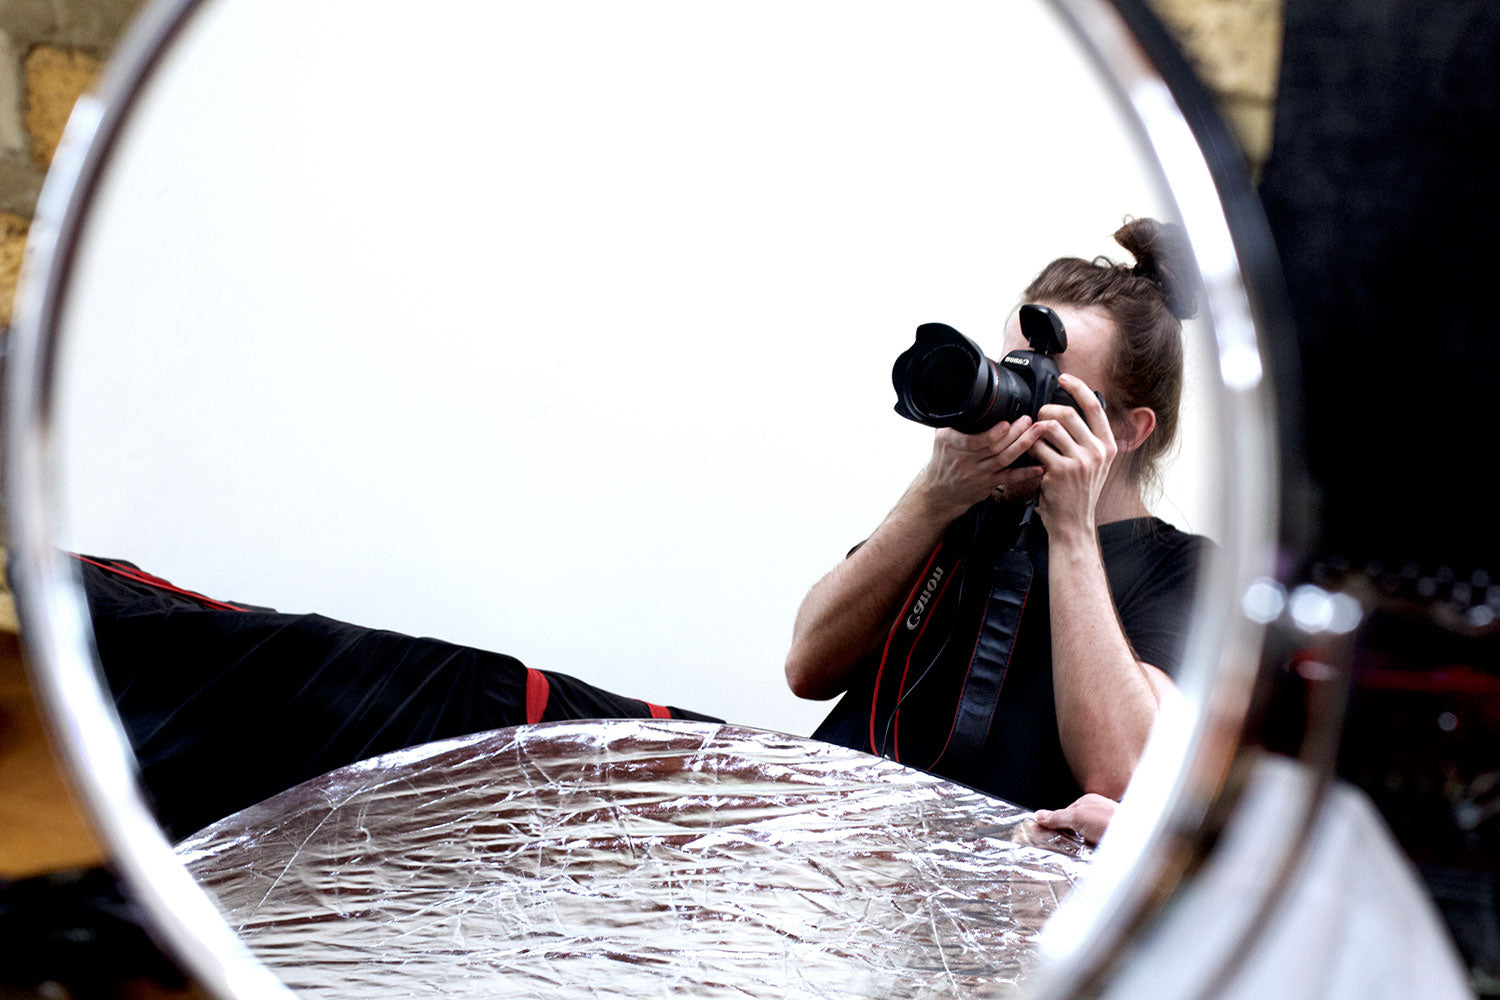 Robert-Binda-Behind-The-Scenes-Photographer